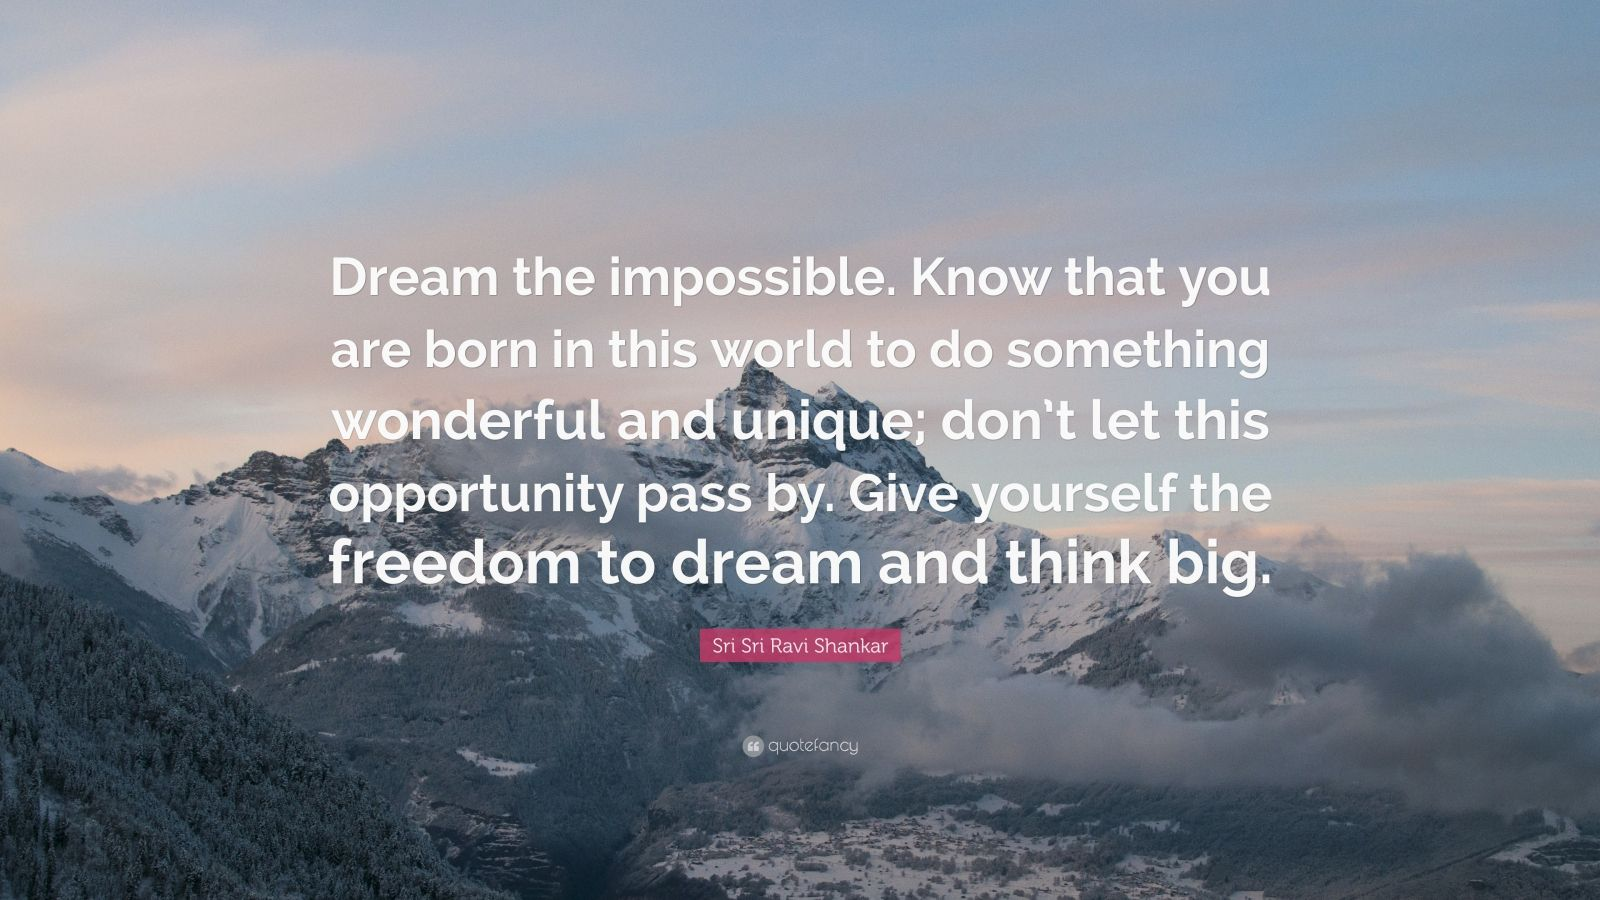 """Sri Sri Ravi Shankar Quote: """"Dream the impossible. Know that you are born in this world to do something wonderful and unique; don't let this opportunity pass by. Give yourself the freedom to dream and think big."""""""